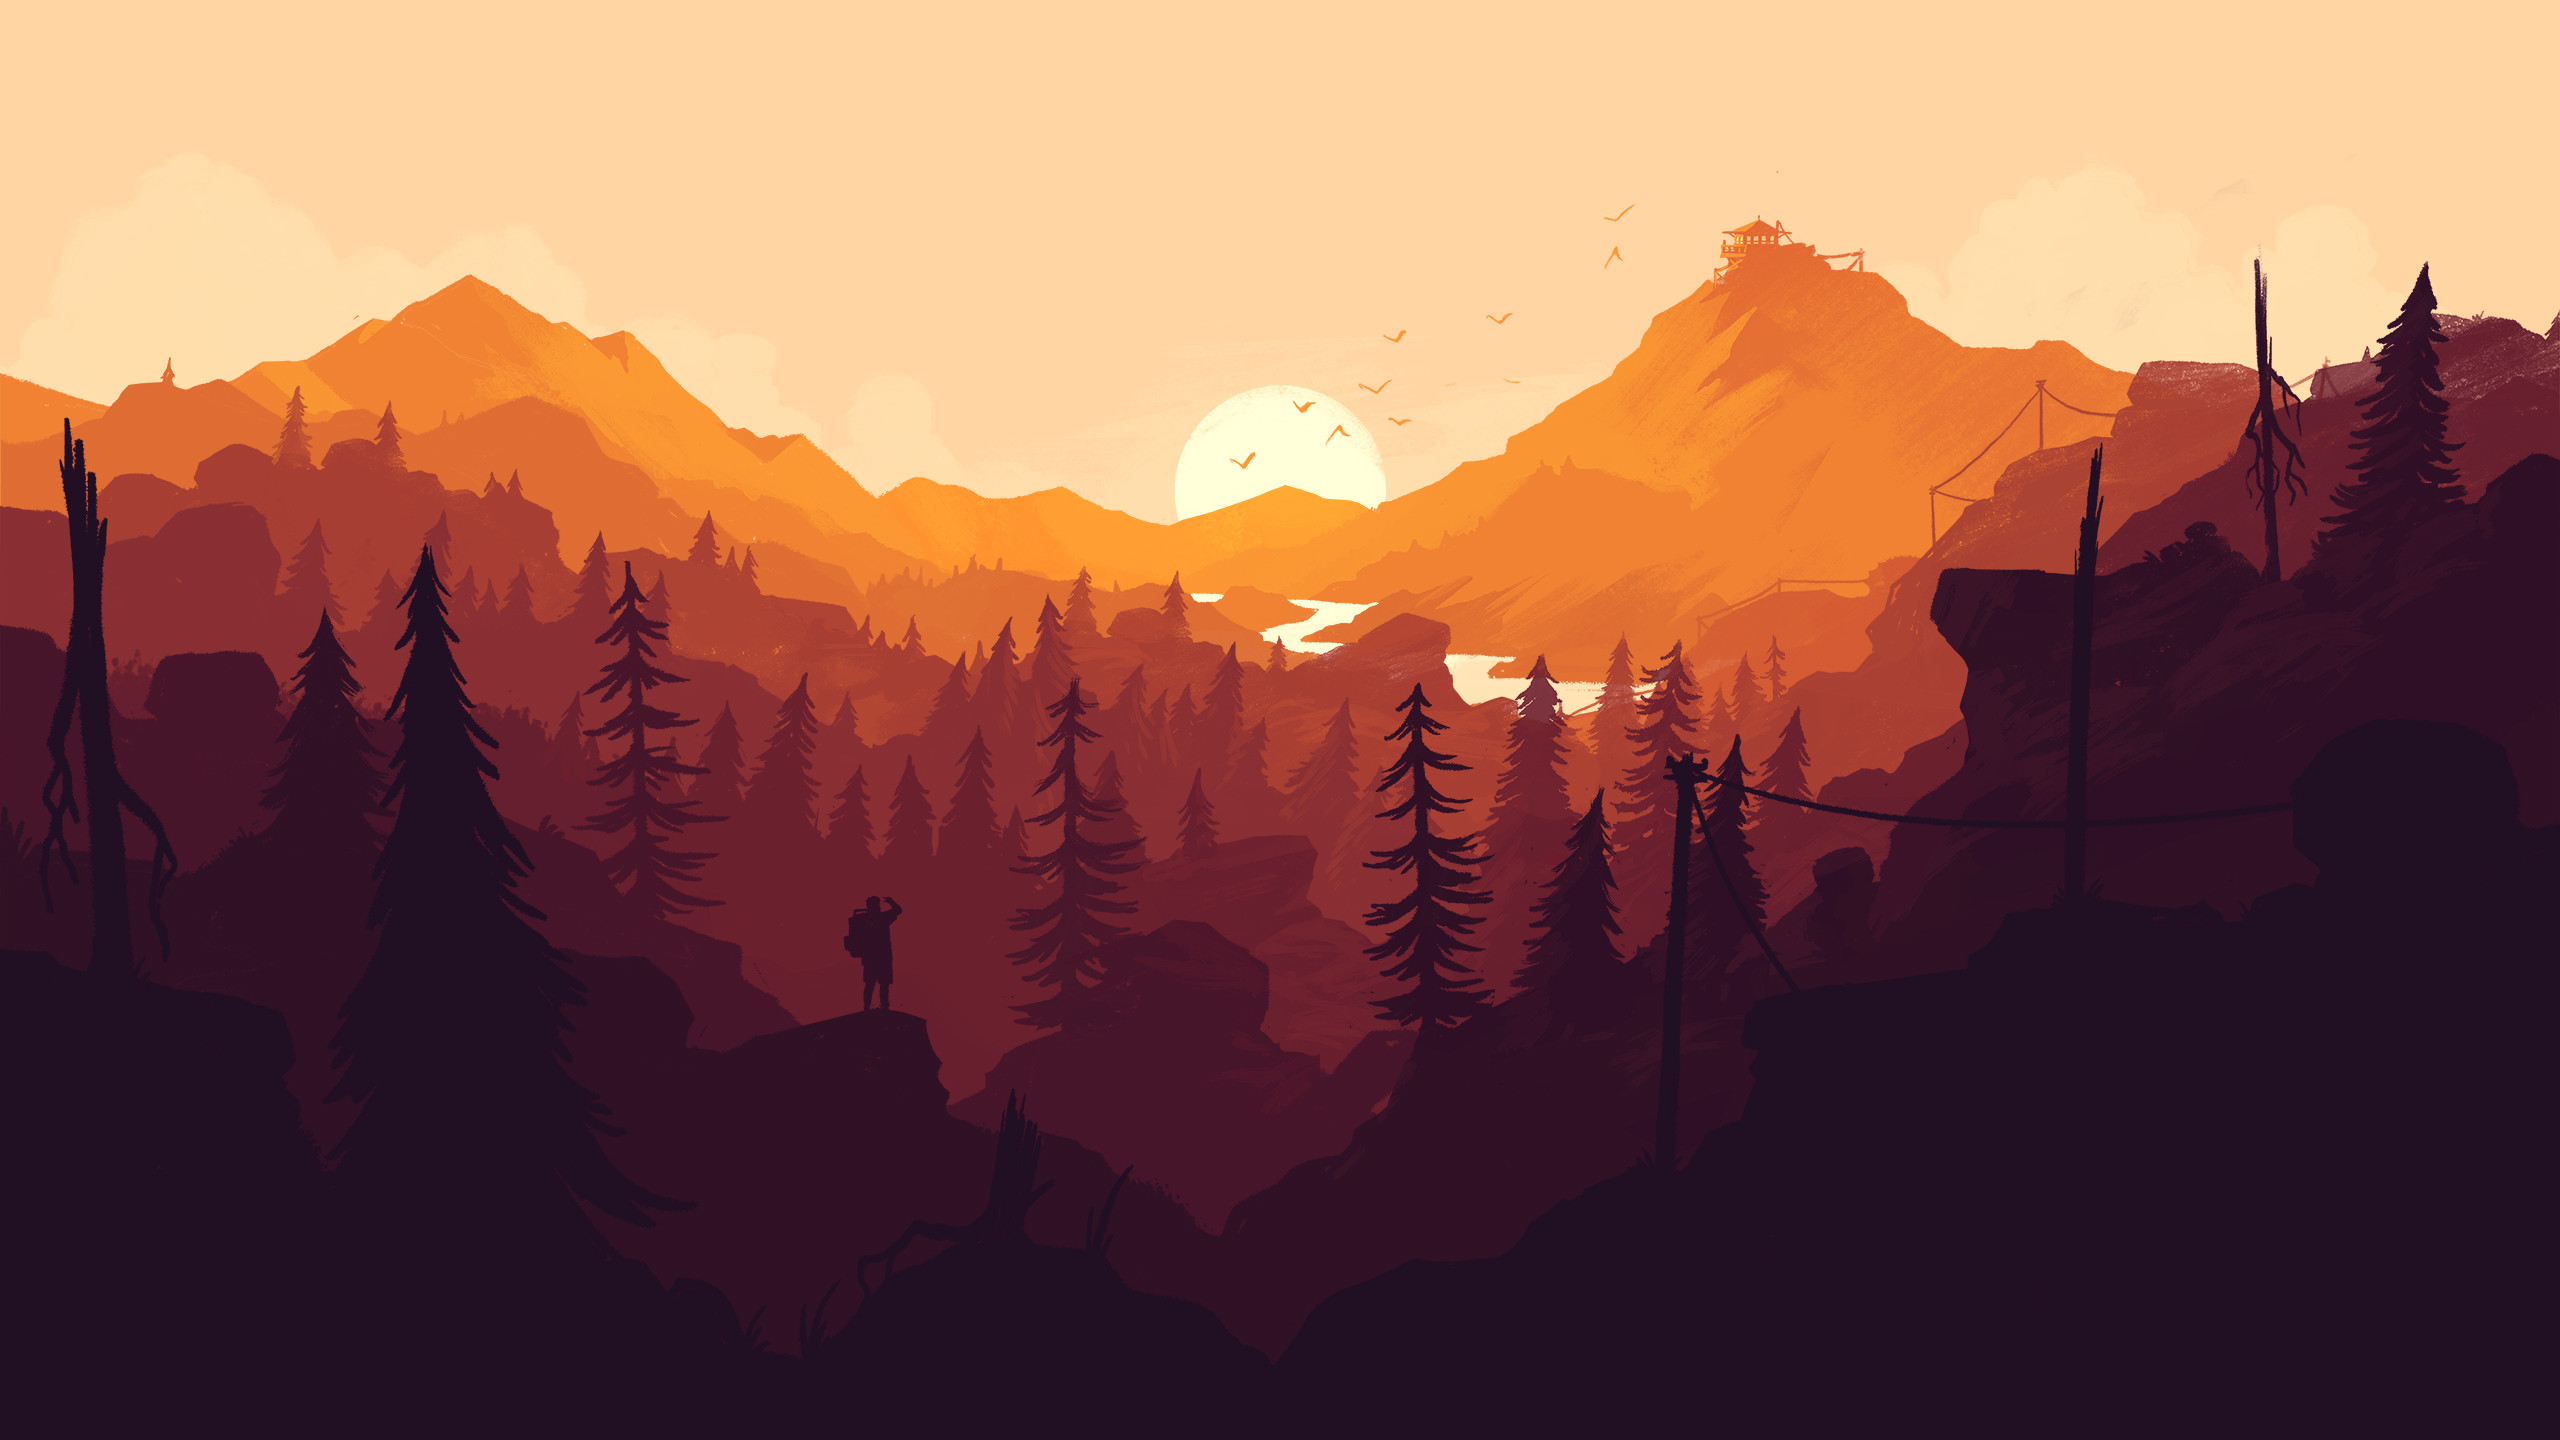 2560x1440 Firewatch videogame wallpaper. Colorful landscape wallpaper, mountains,  forest, trees, nature,